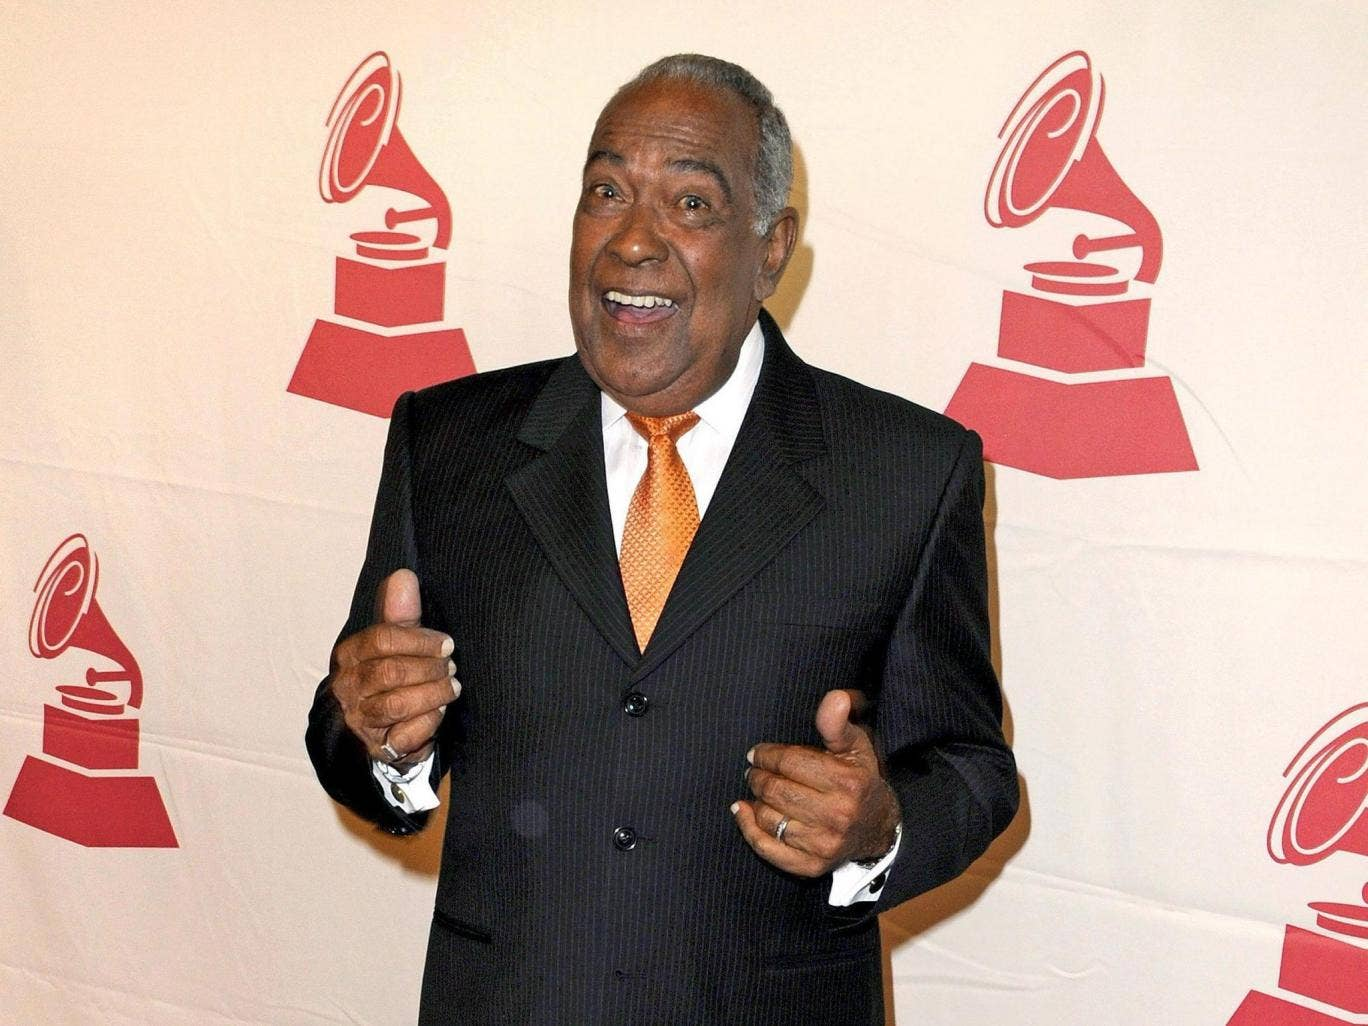 Feliciano in 2008, about to receive a Lifetime Achievement Award from the Latin Recording Academy